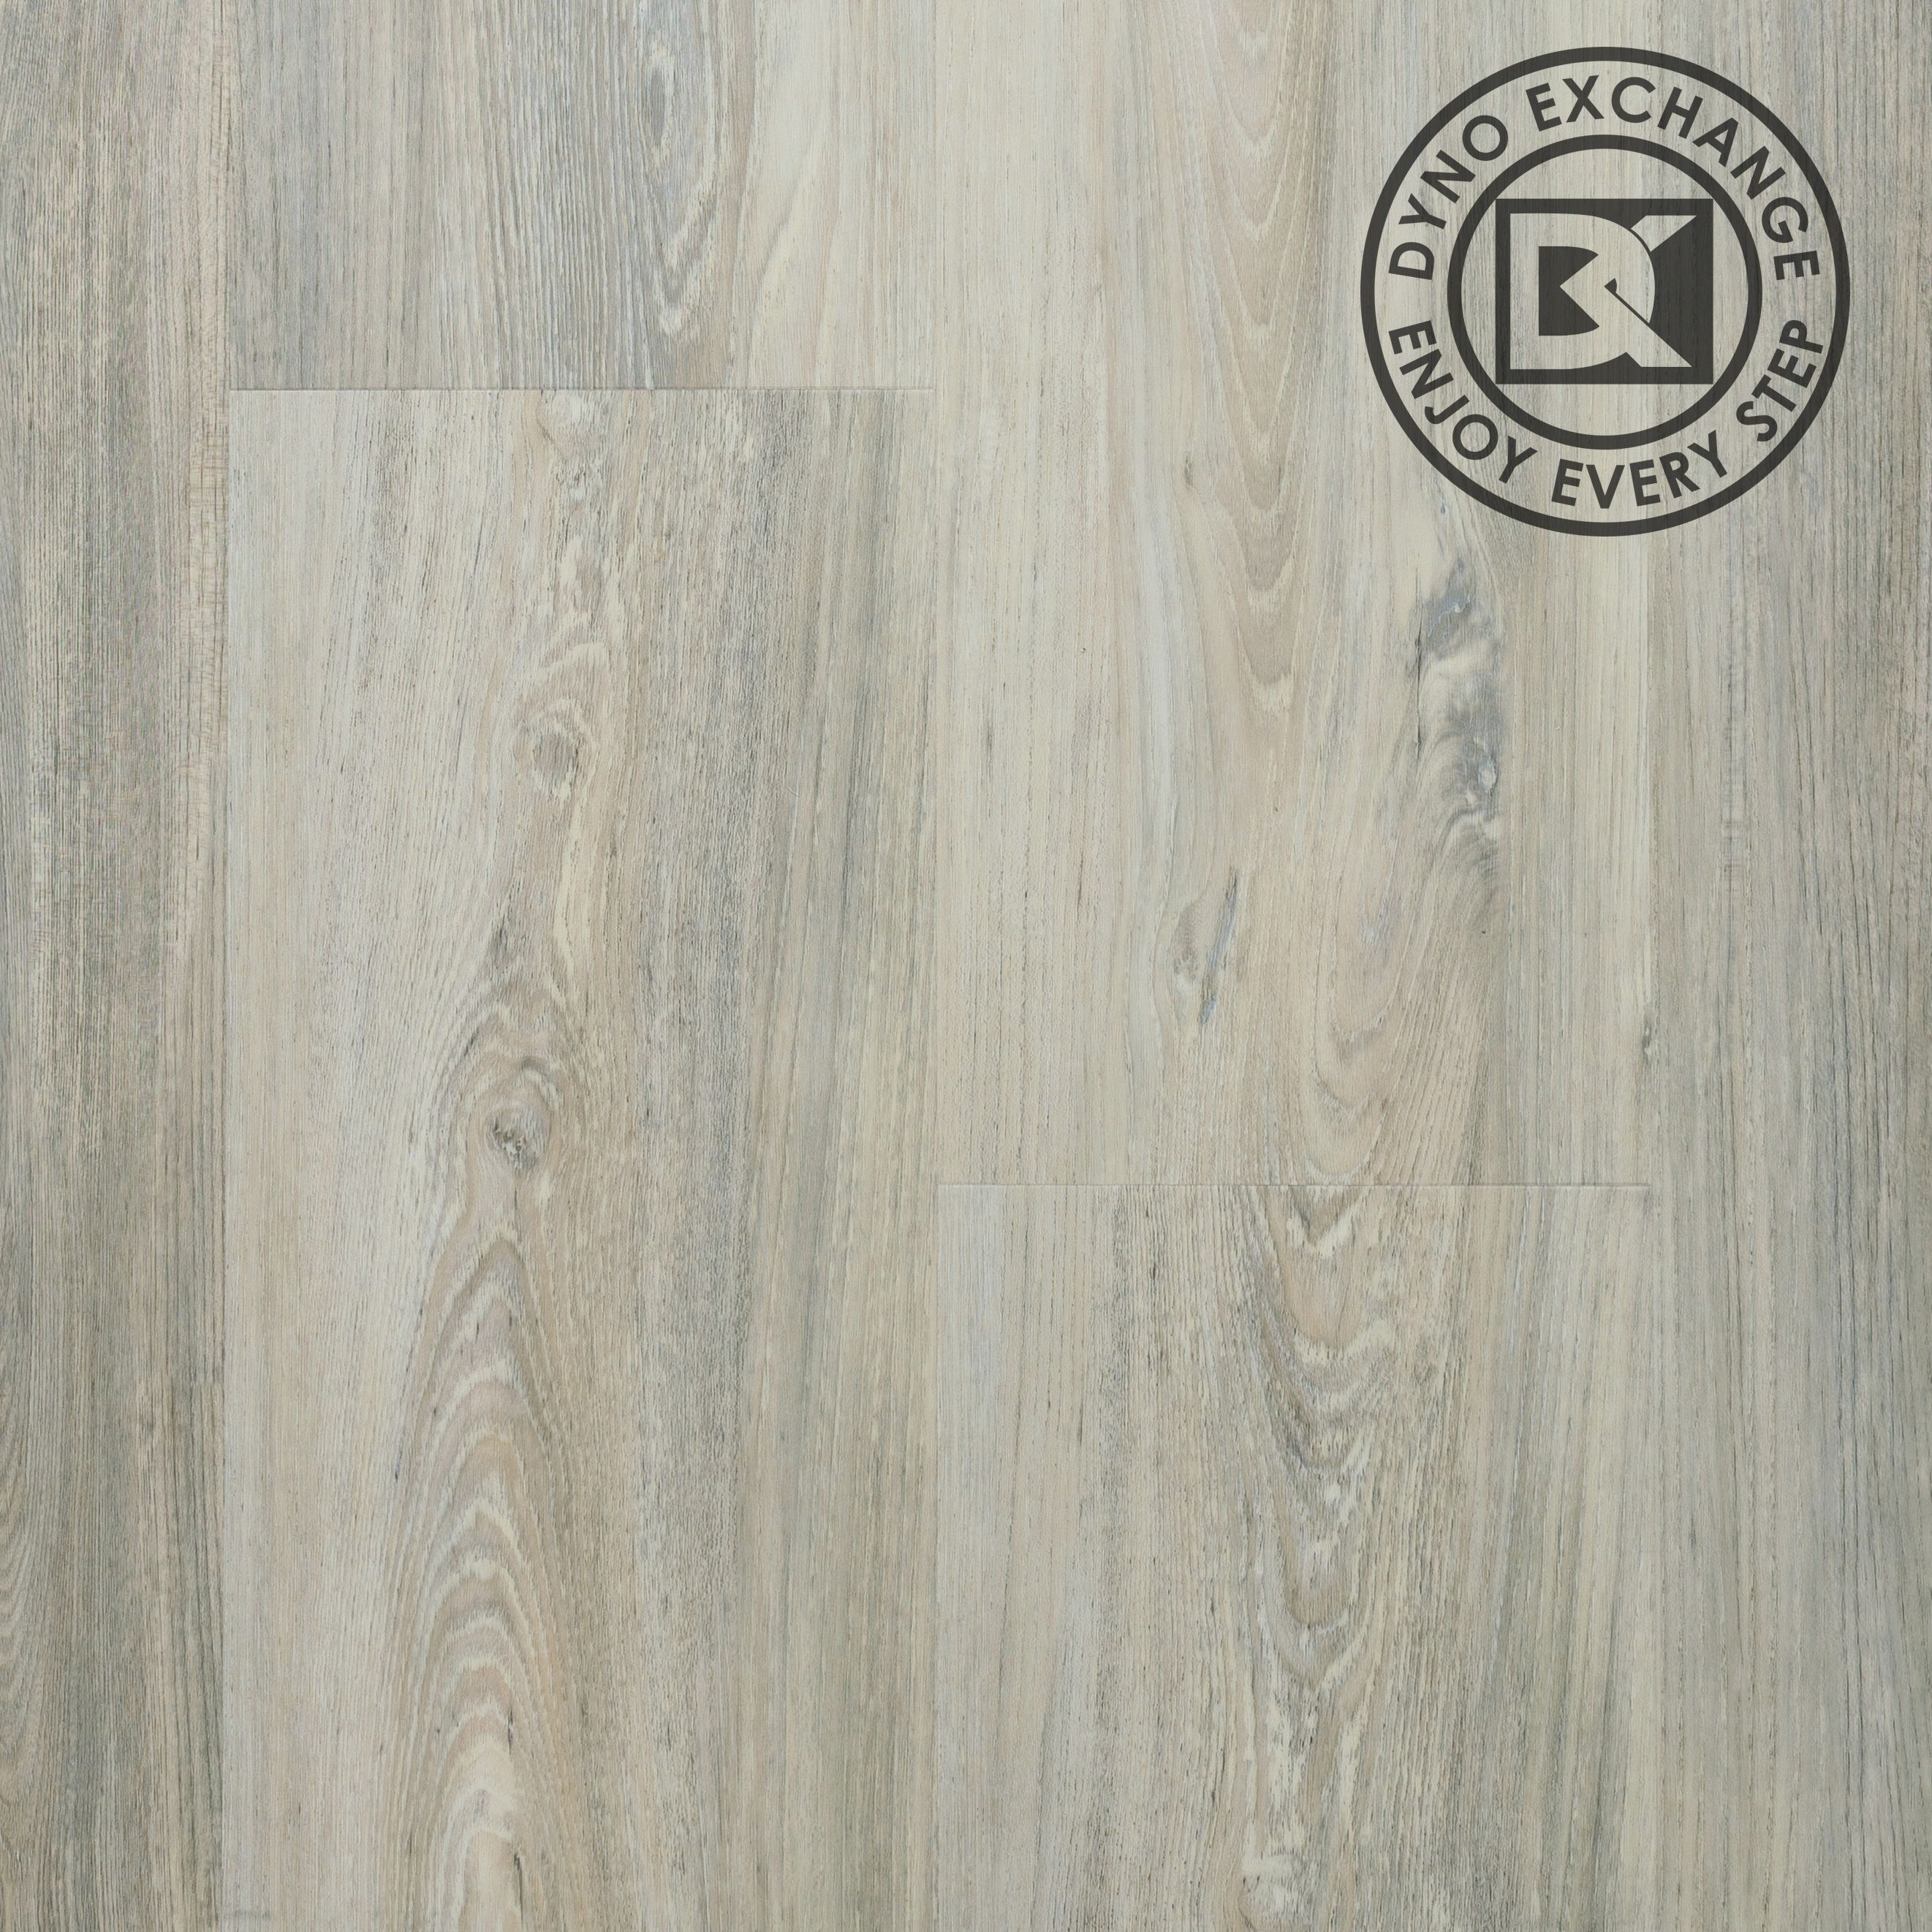 Dyno Exchange, Elite Collection WPC Flooring, Nova Birch, 100% Waterproof Floor